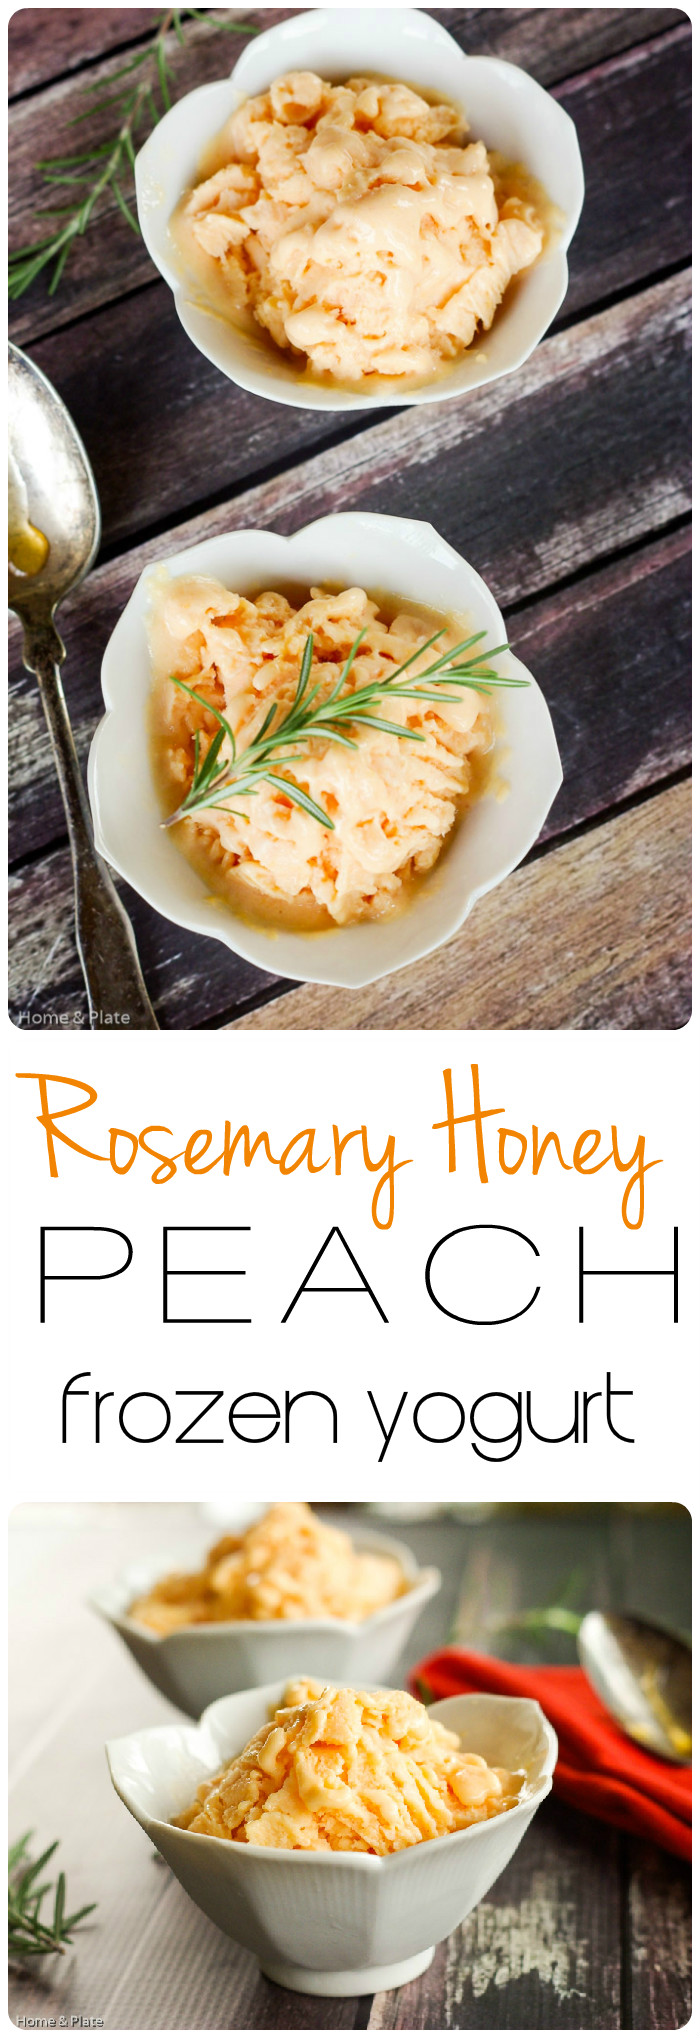 Rosemary Honey Peach Frozen Yogurt | Home & Plate | www.homeandplate.com | Rosemary and honey come together in this peach frozen yogurt dessert.